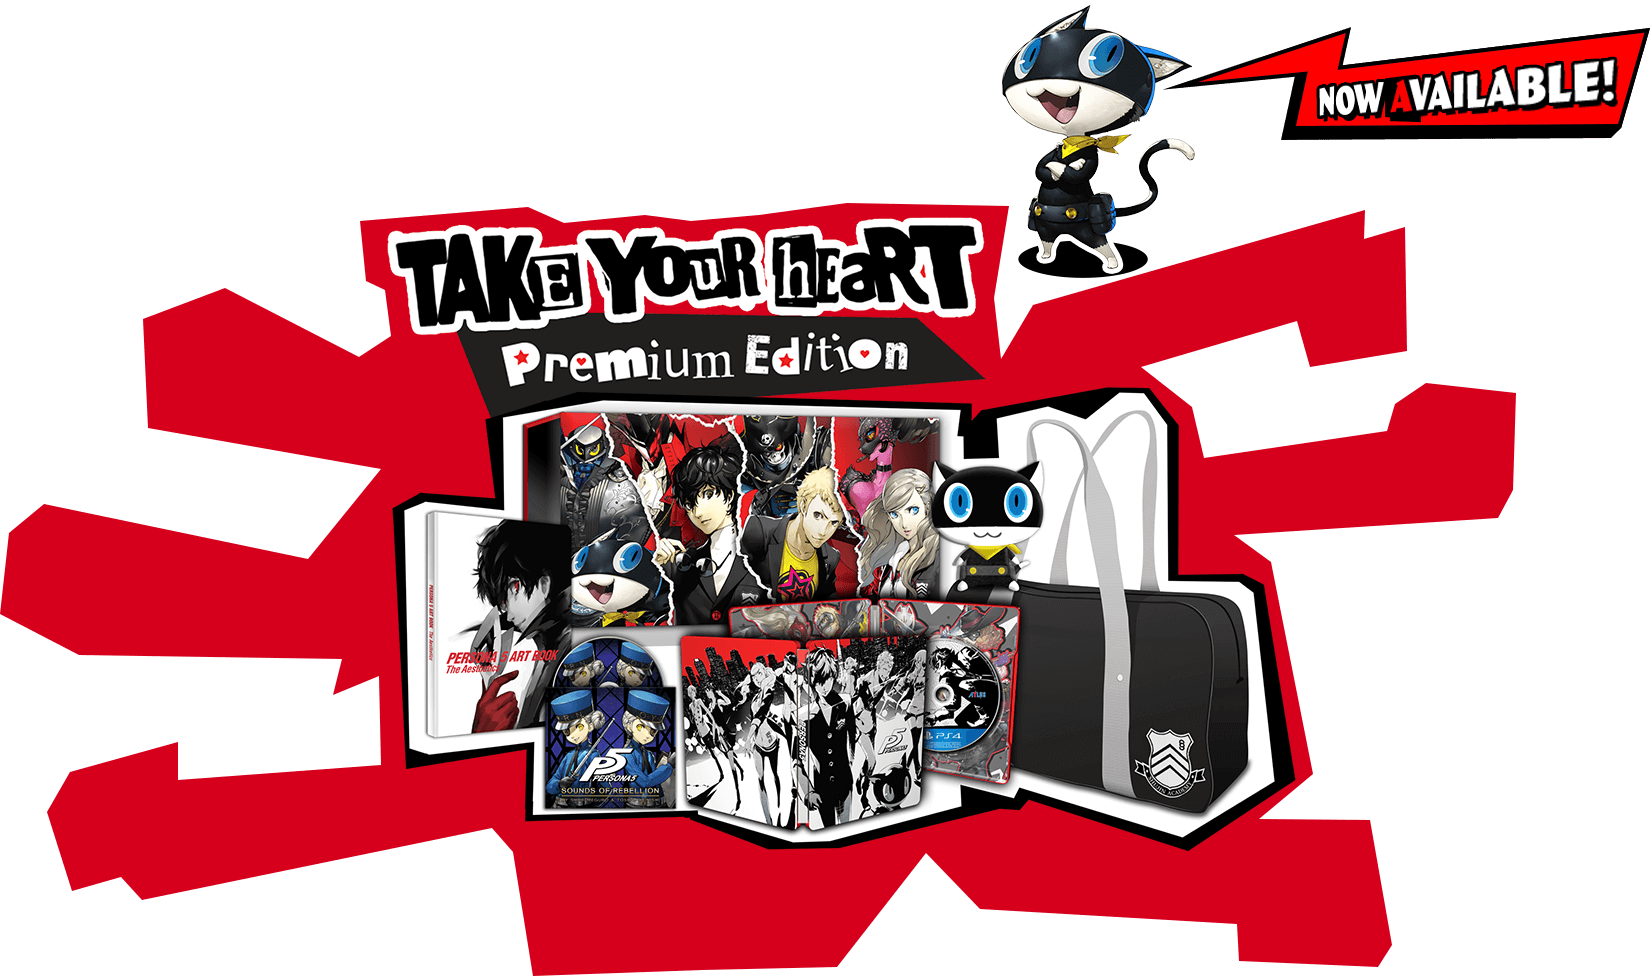 Persona 5 delayed but dual audio confirmed for PS4 and PS3